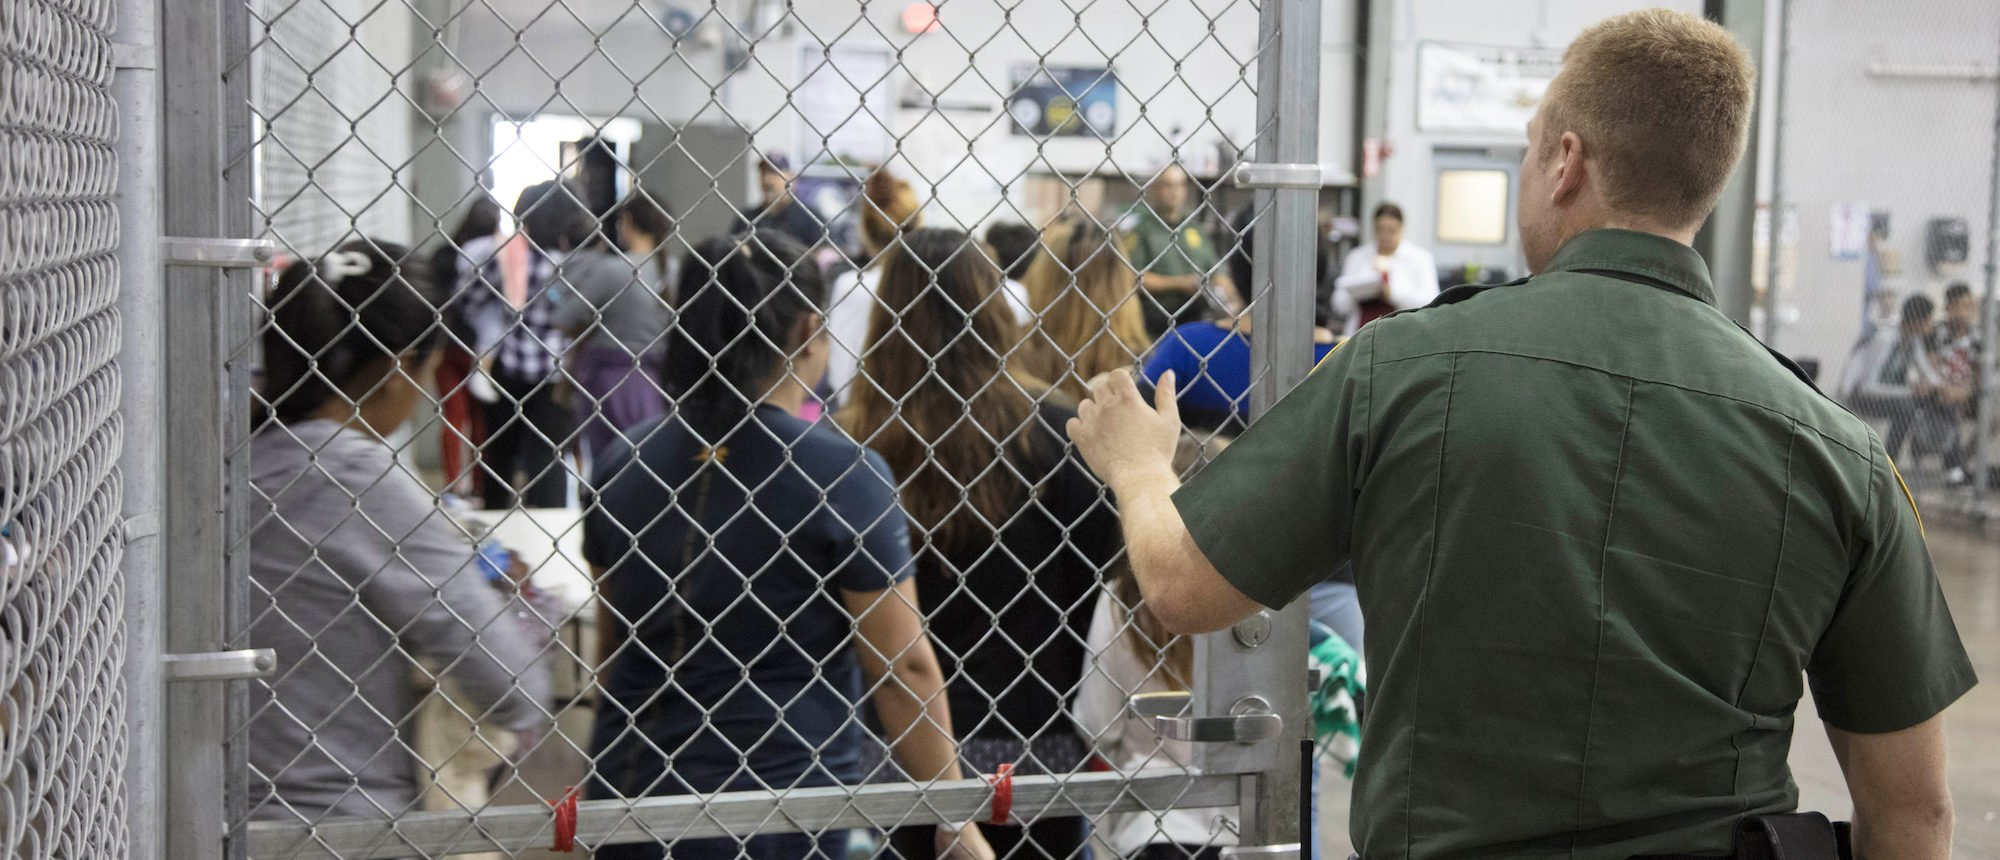 A view of inside U.S. Customs and Border Protection (CBP) detention facility shows detainees inside fenced areas at Rio Grande Valley Centralized Processing Center in Rio Grande City, Texas, June 17, 2018. Courtesy CBP/Handout via REUTERS